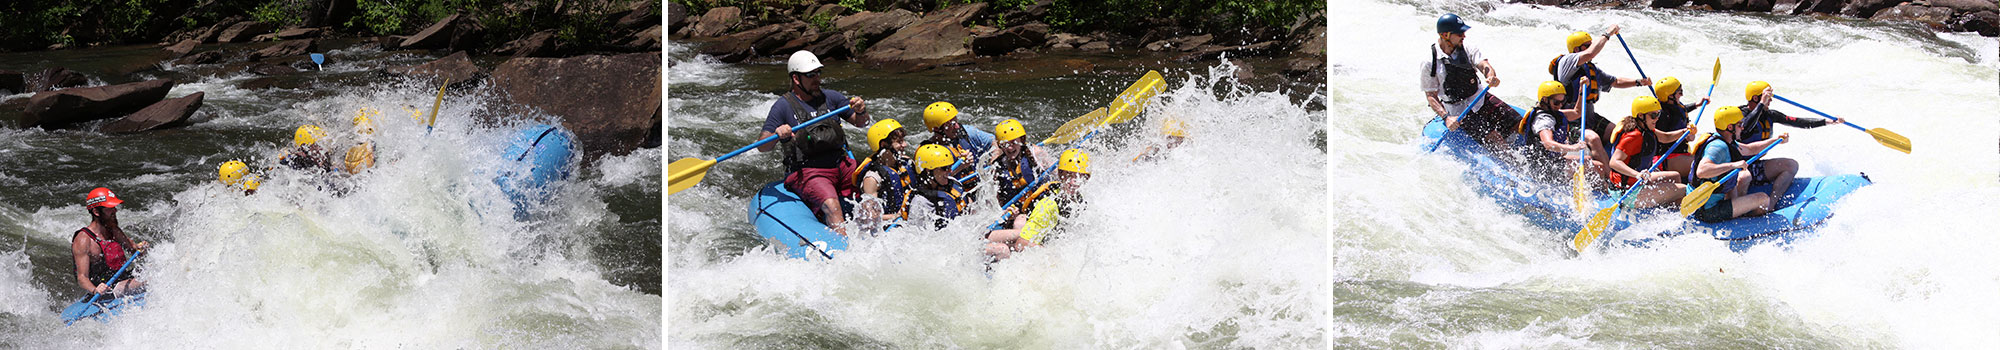 Frequently Asked Questions about Ocoee River Whitewater Rafting